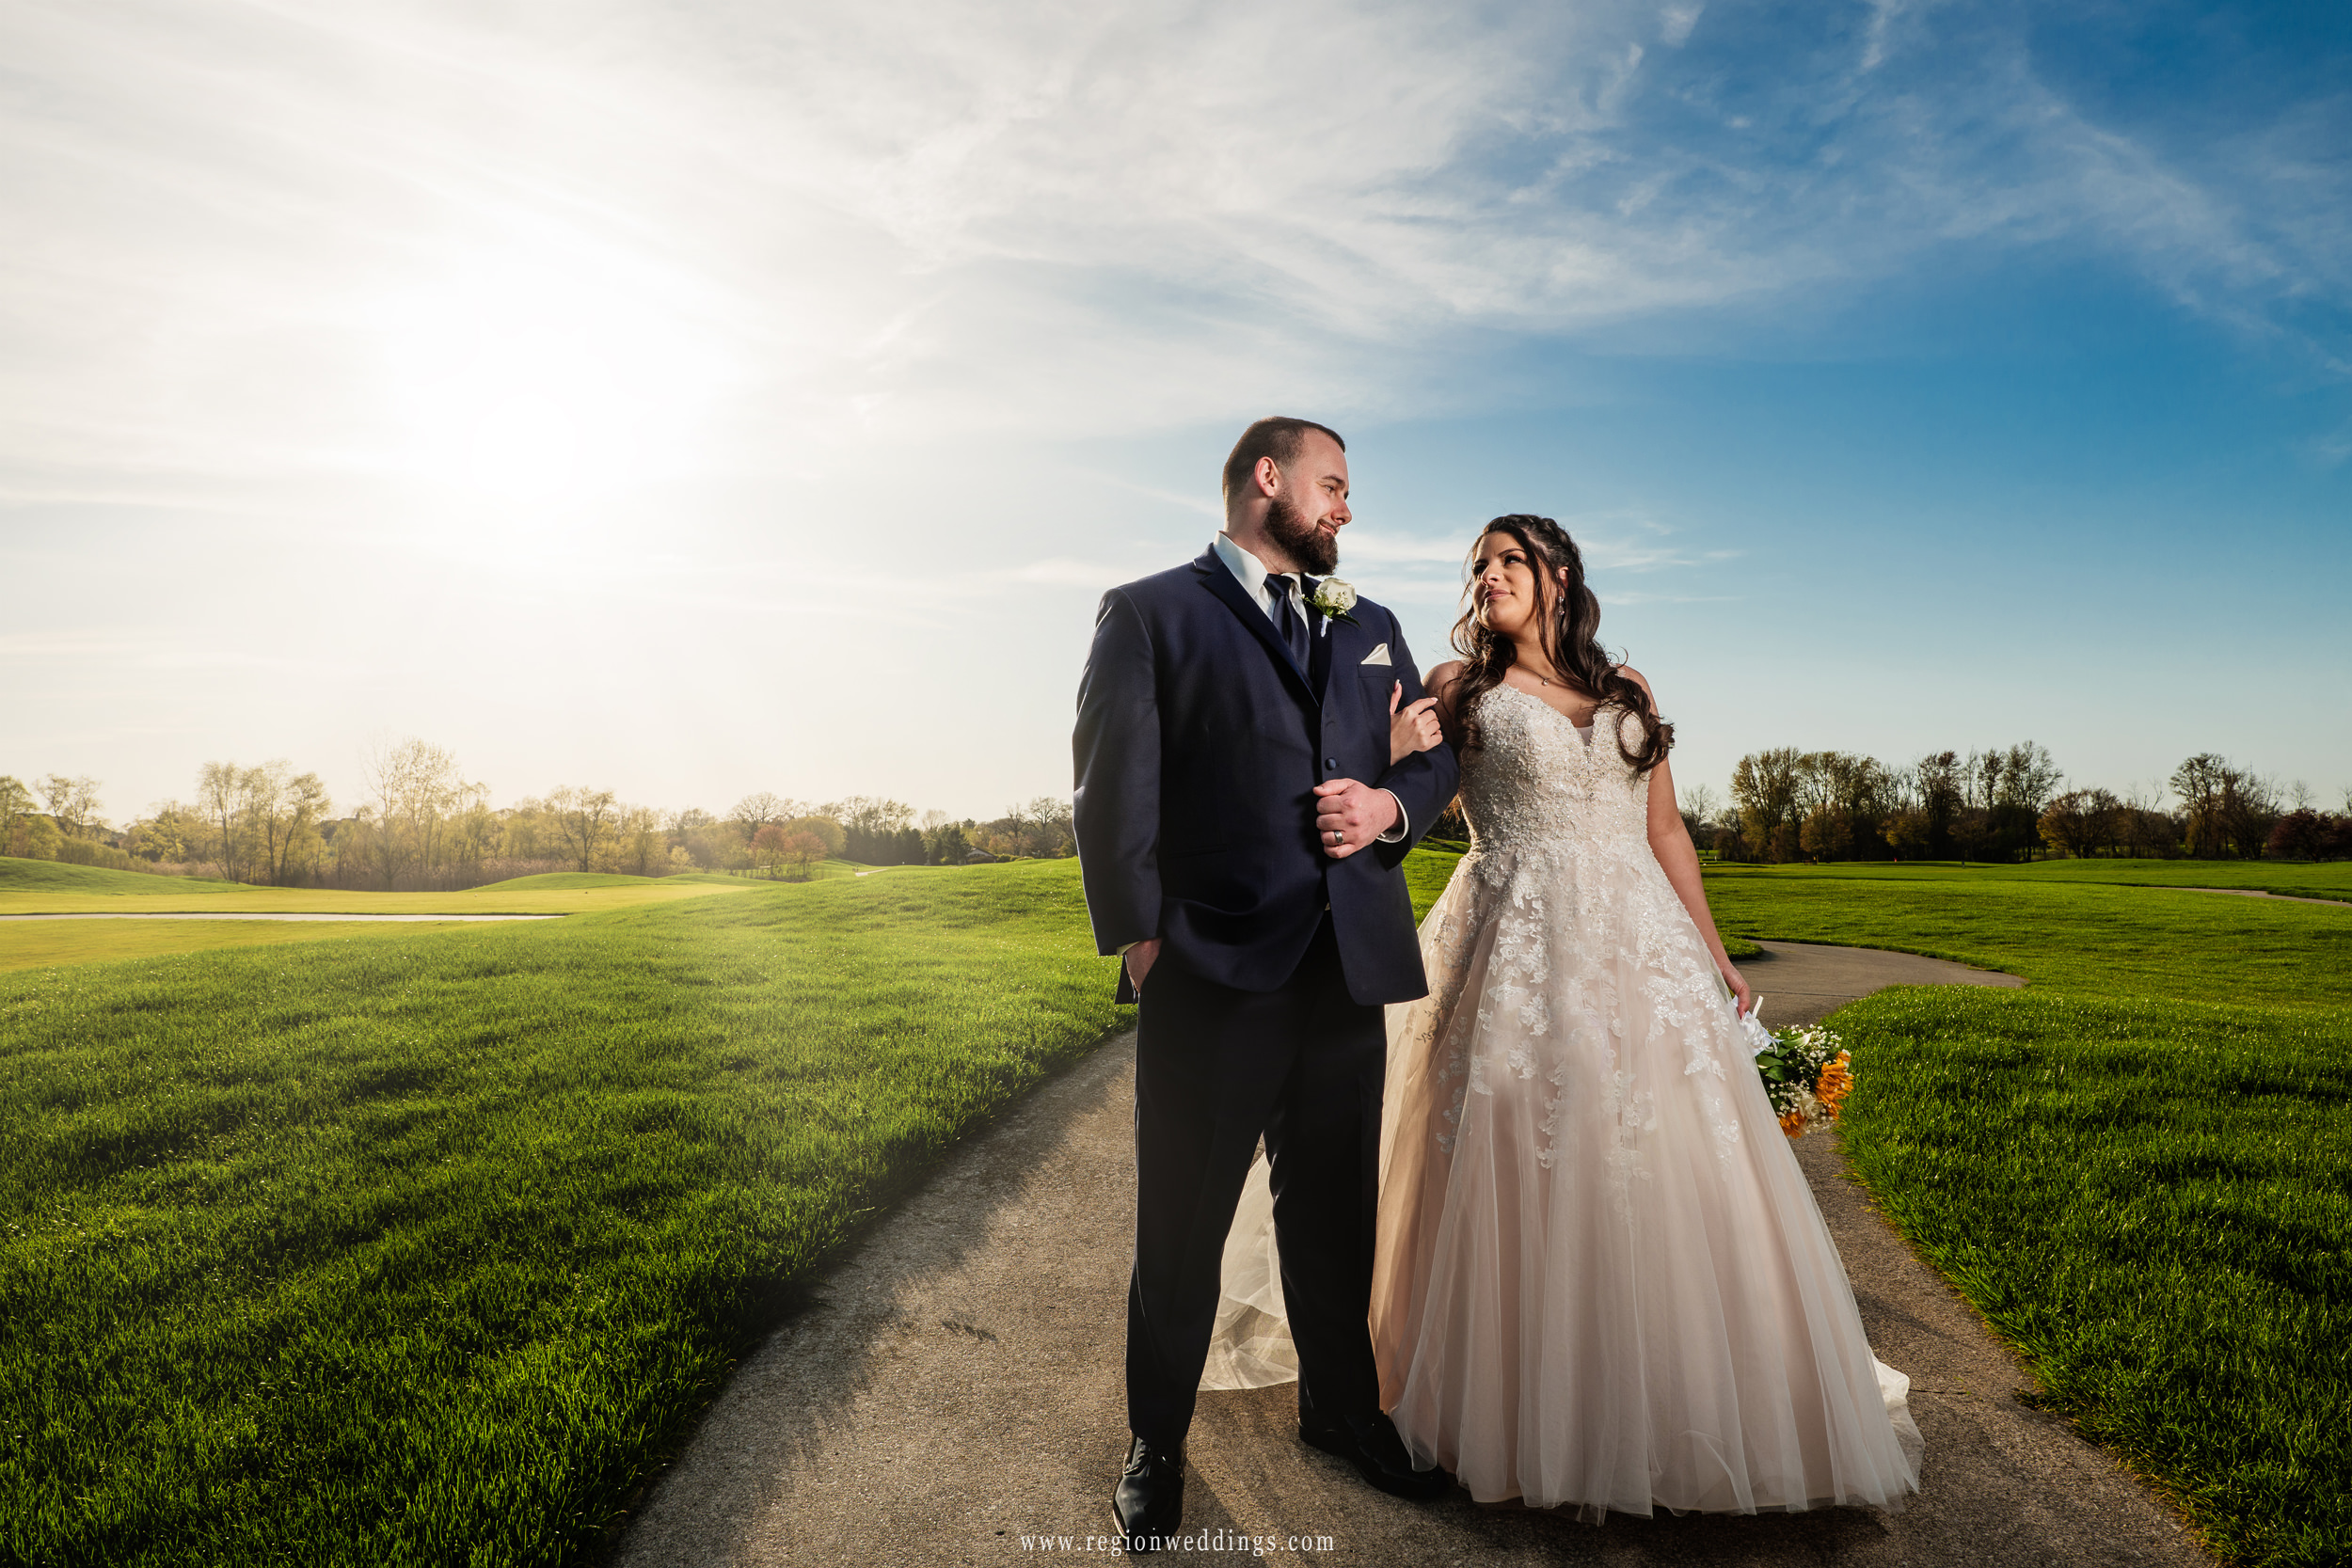 A romantic stroll on the Sand Creek golf course as the sun shines brightly.